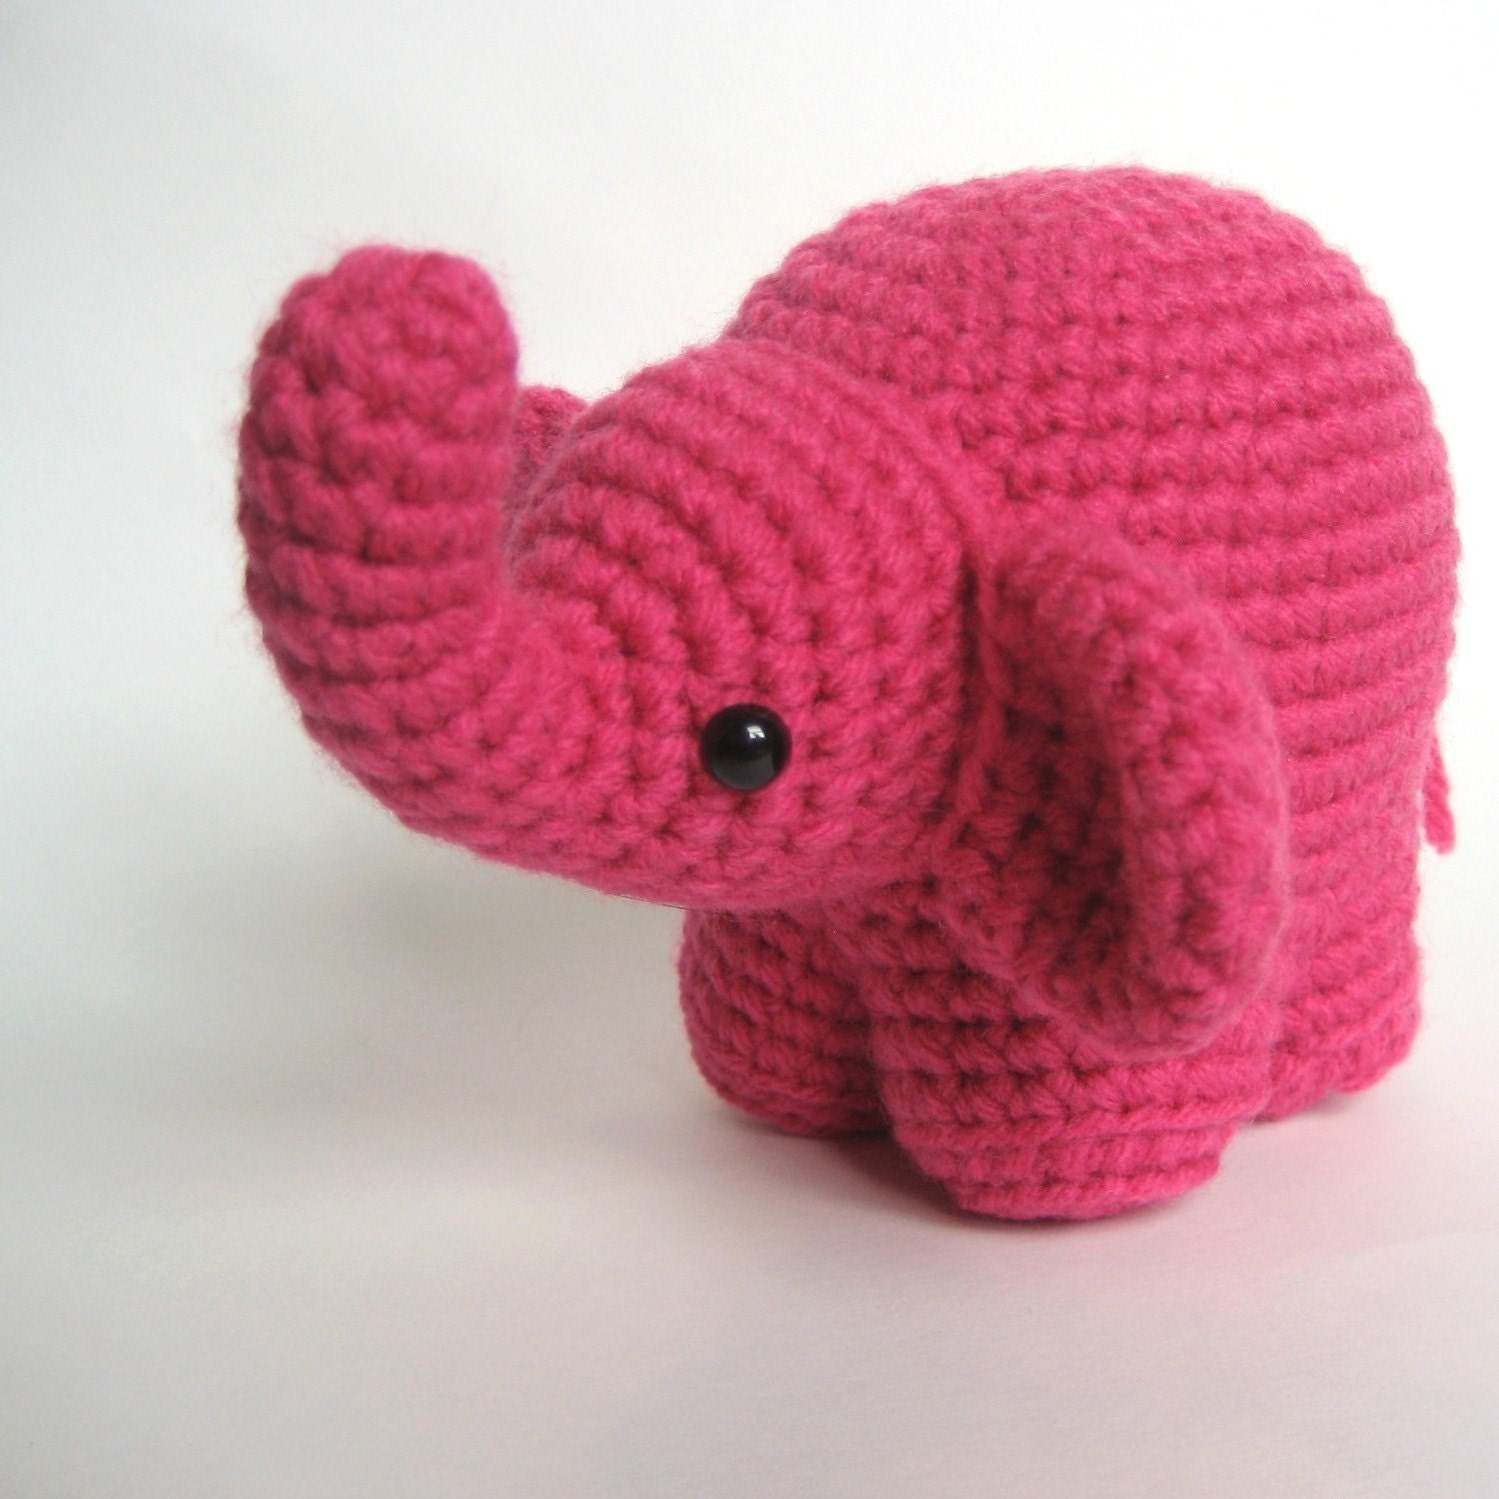 Crochet Patterns Elephant : Amigurumi Crochet Elephant Pattern